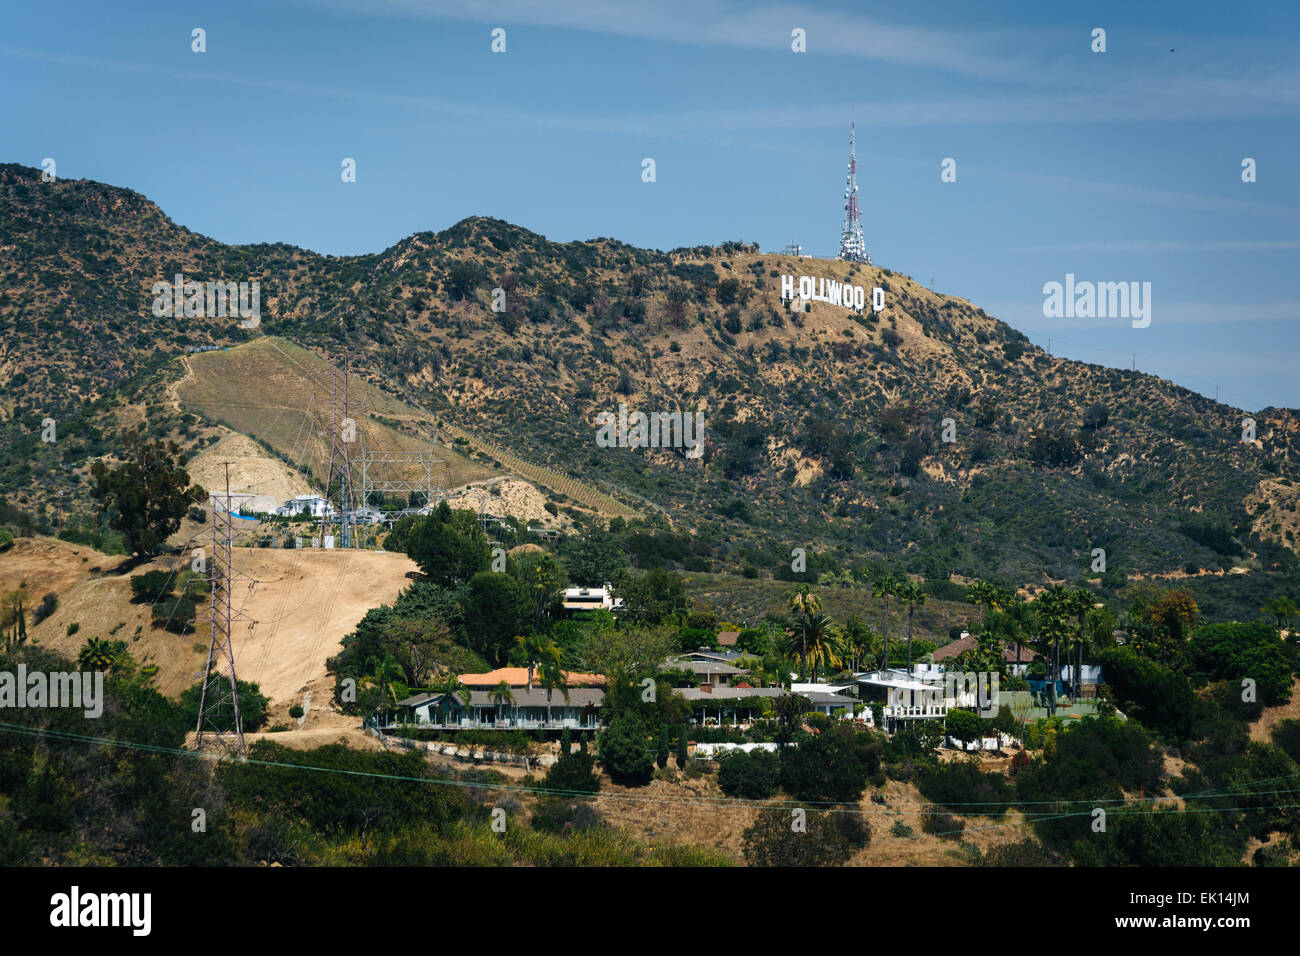 view of hills and the hollywood sign from mulholland drive. Black Bedroom Furniture Sets. Home Design Ideas